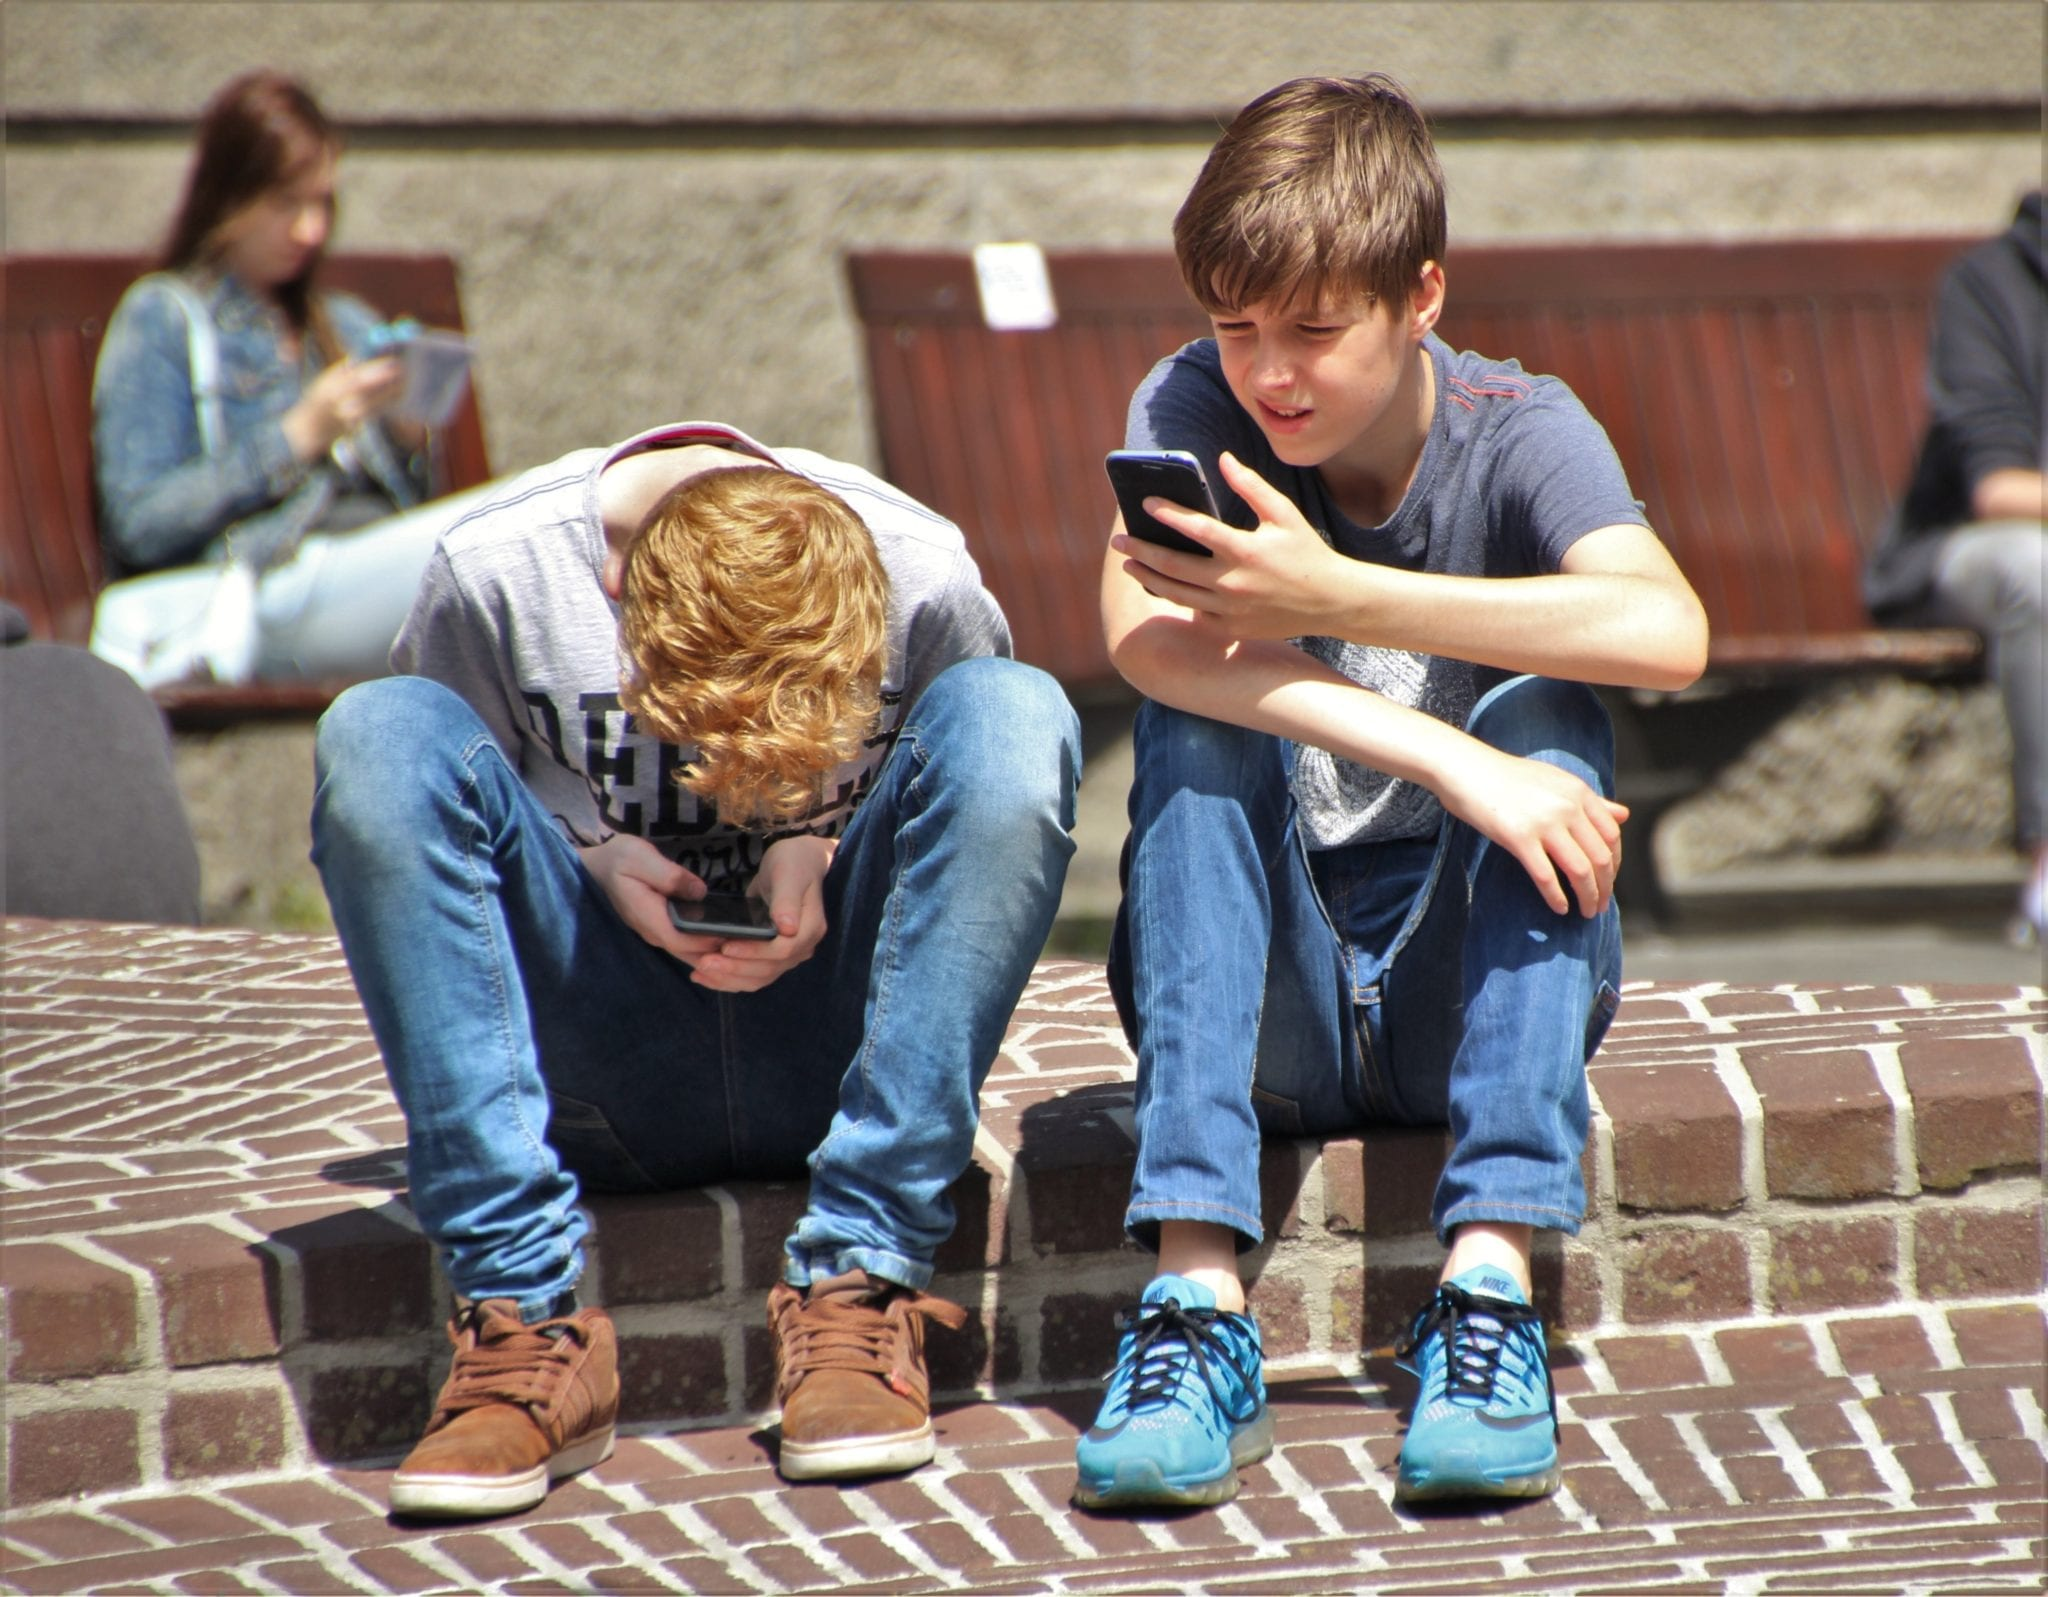 Cell Phone Addiction: Health Effects